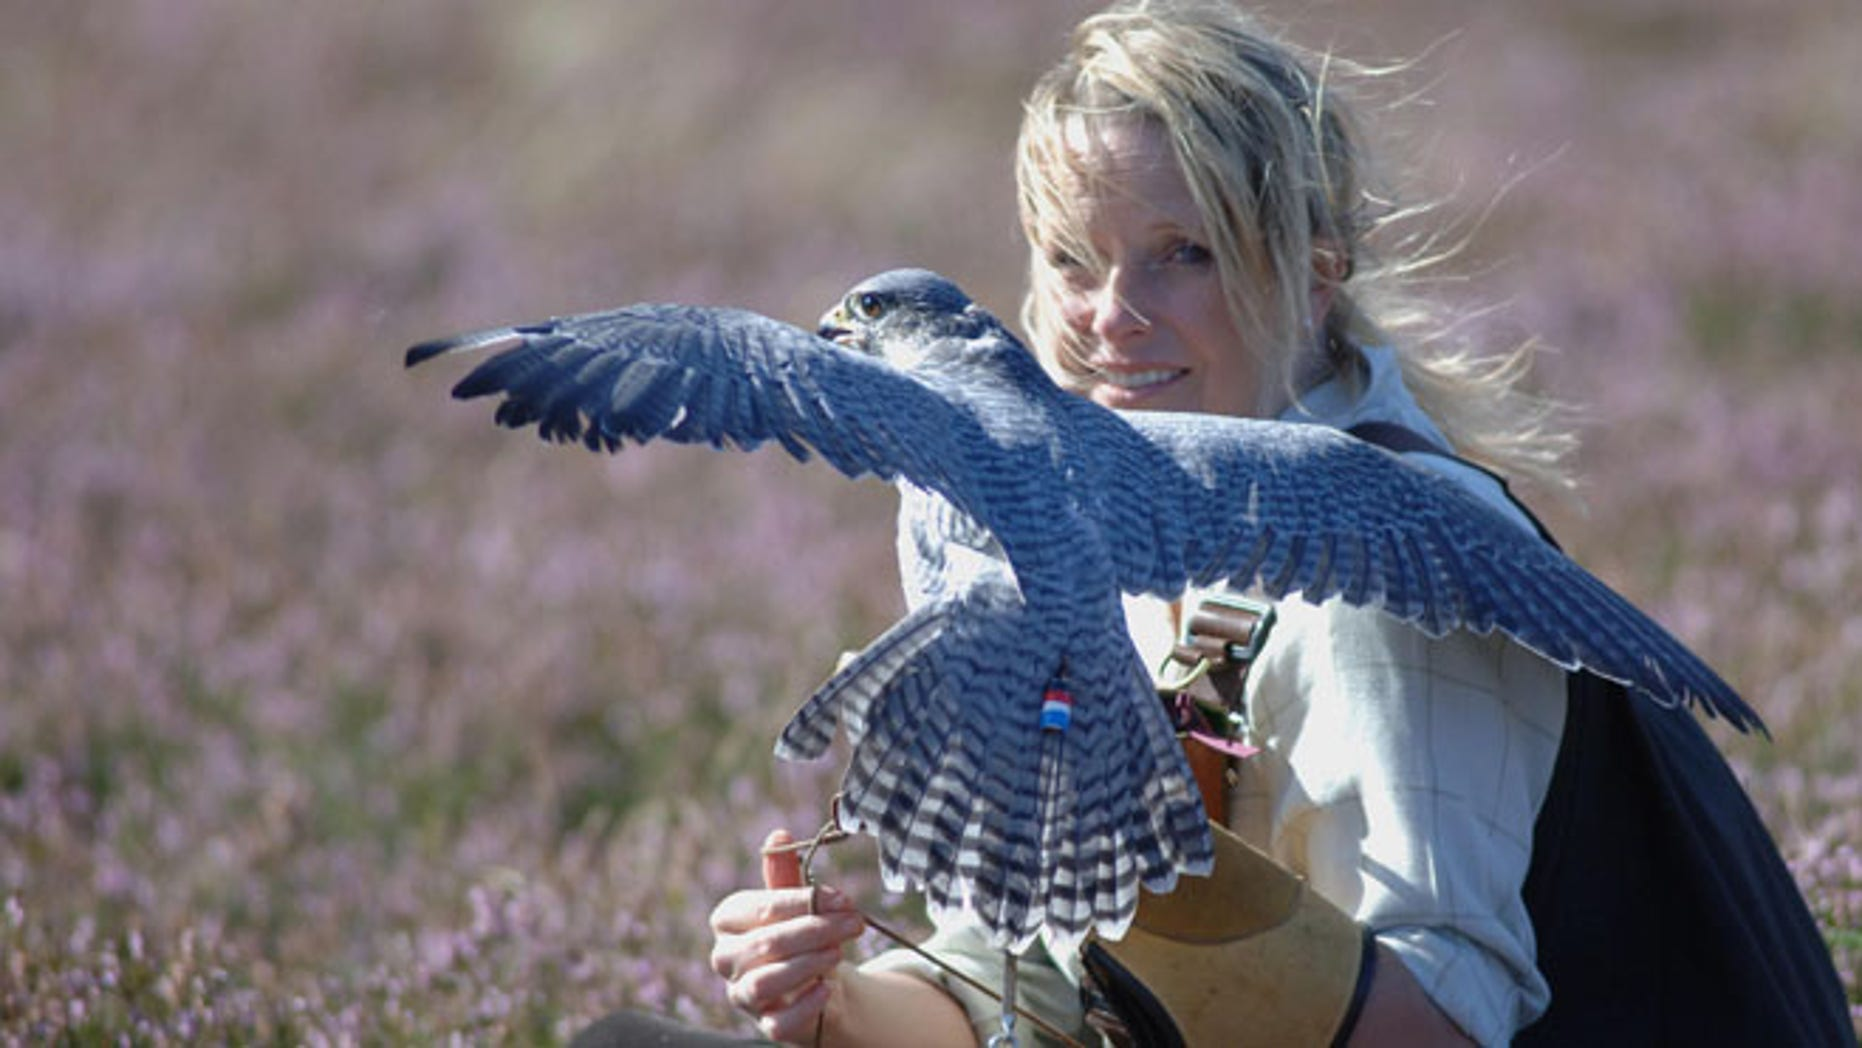 Emma Ford of the British School of Falconry.